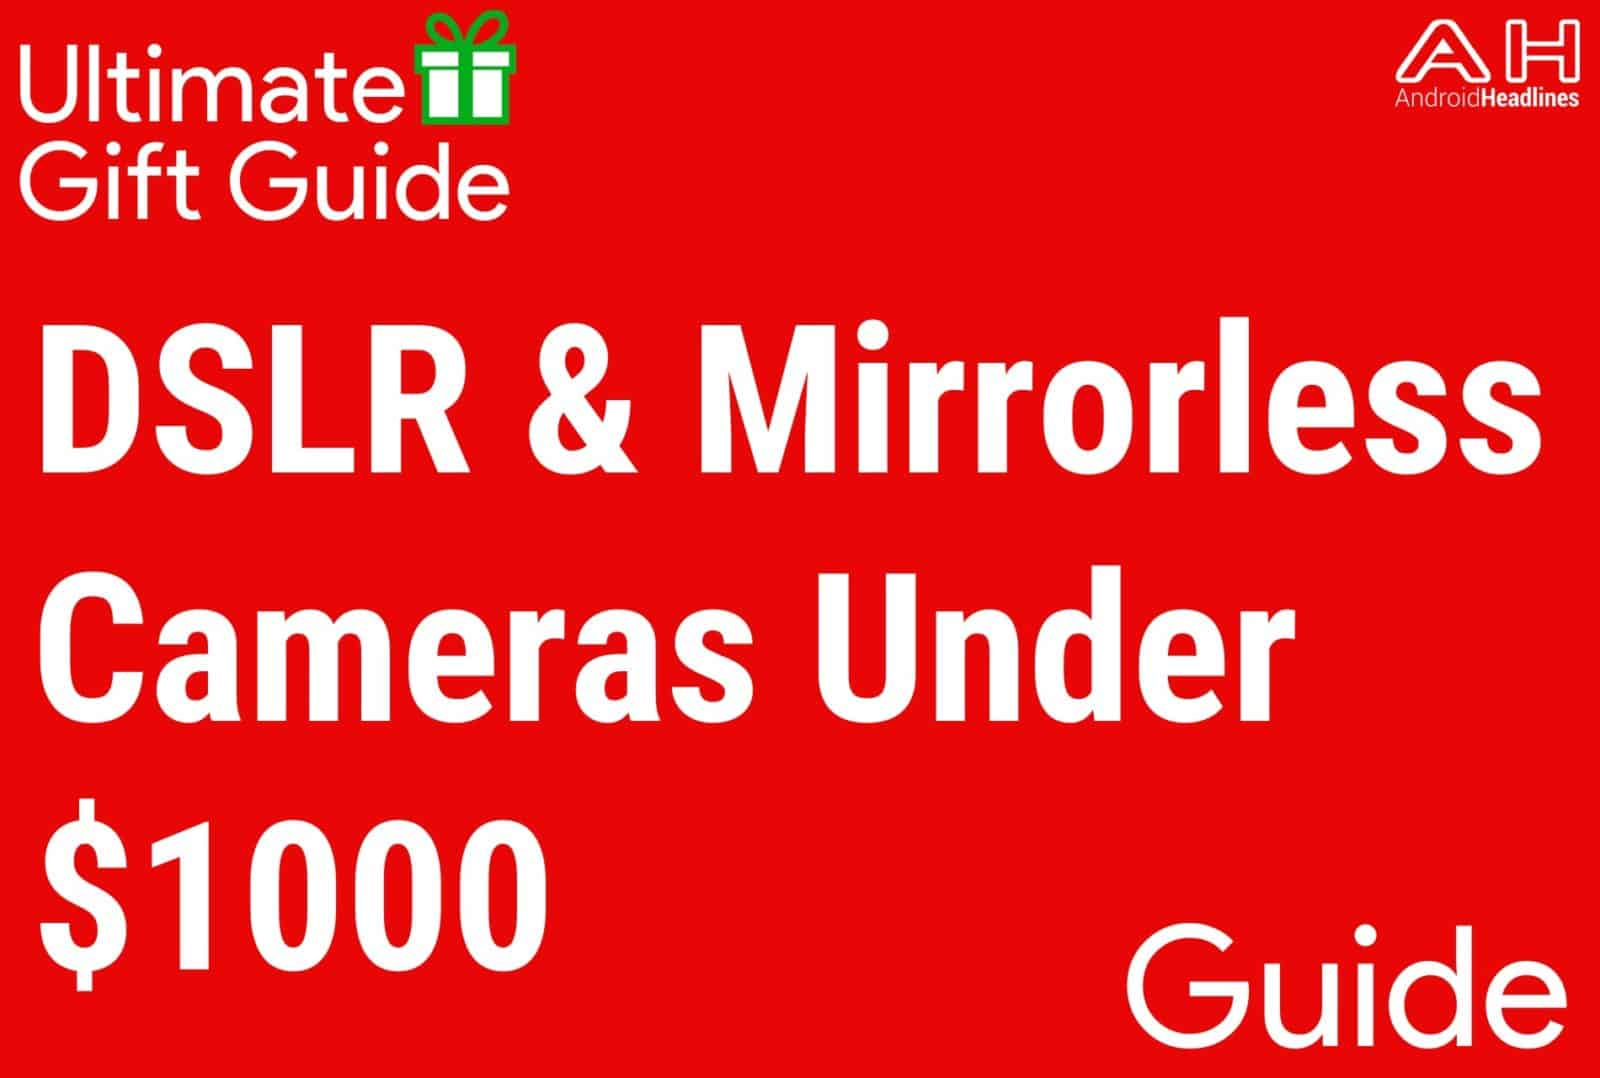 DSLR and Mirrorless Cameras Under $1000 - Gift Guide